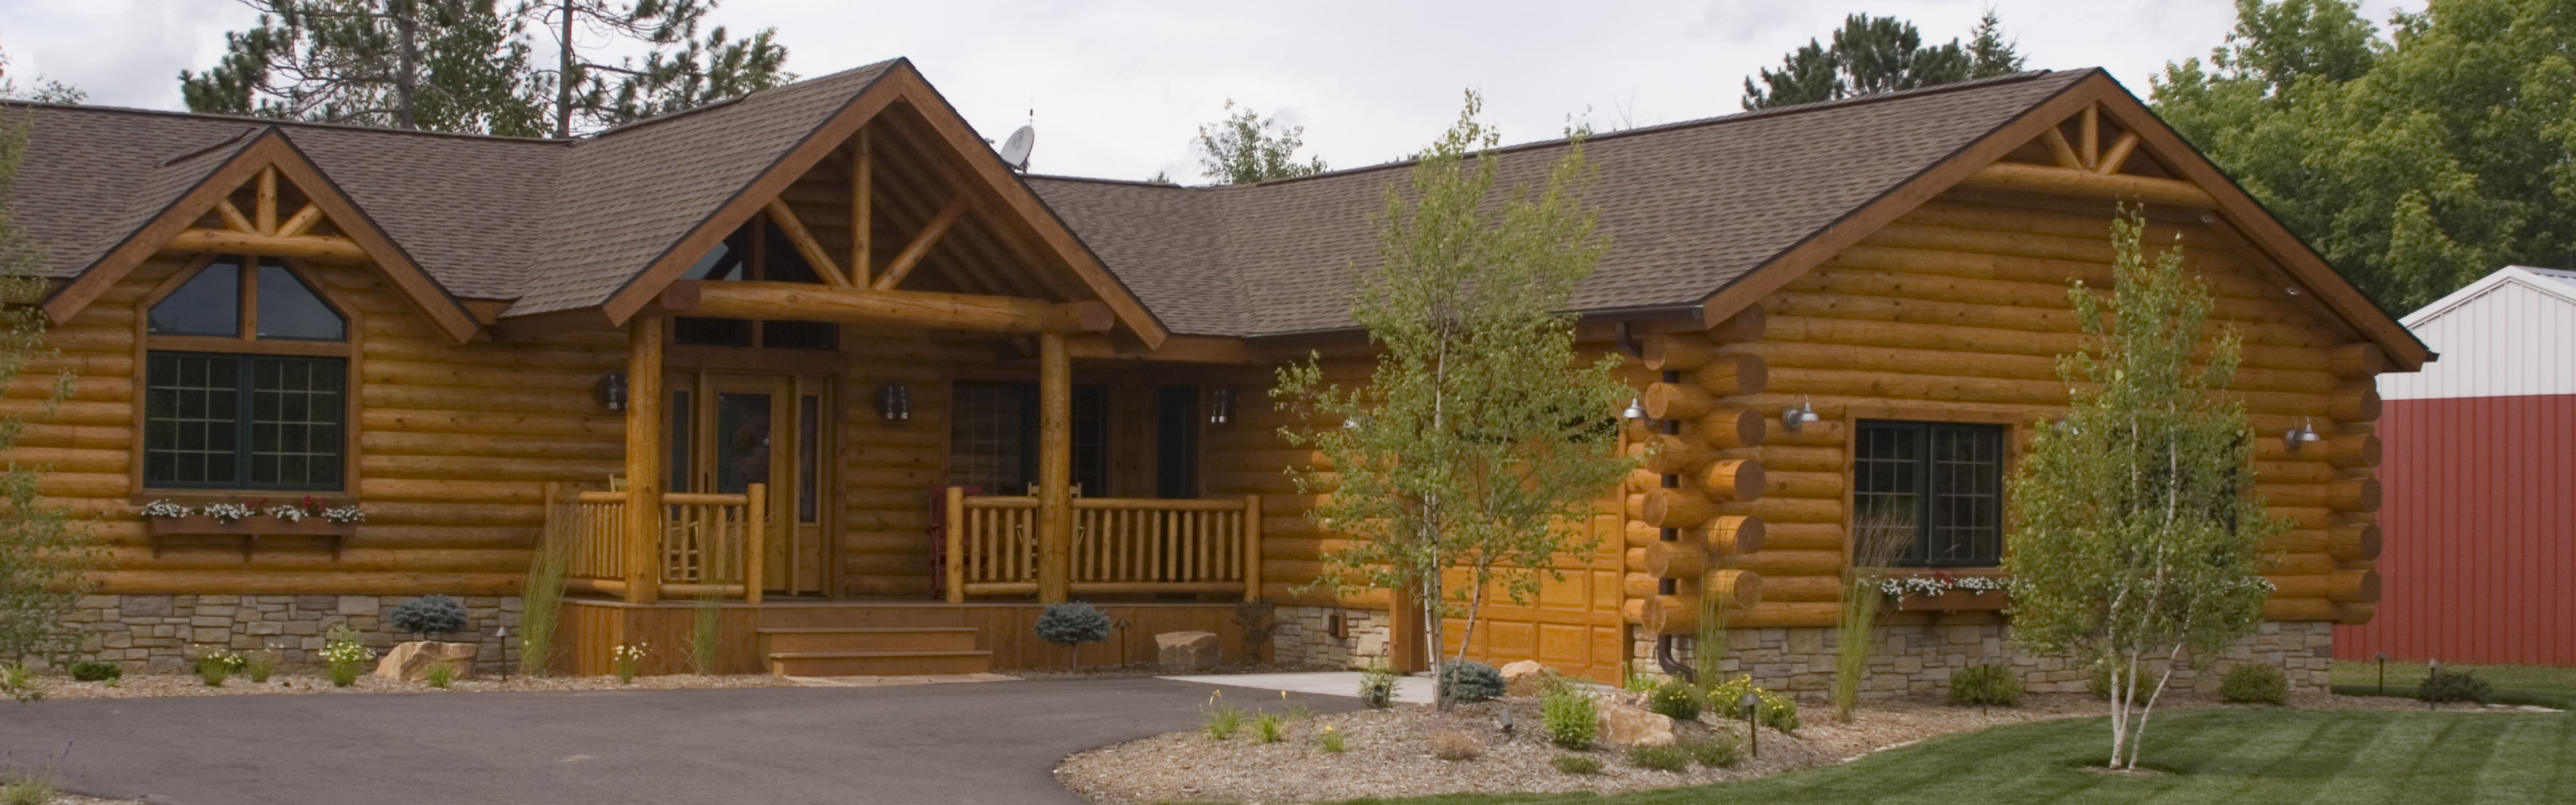 Community Development Phillips: Long Lake Lodge